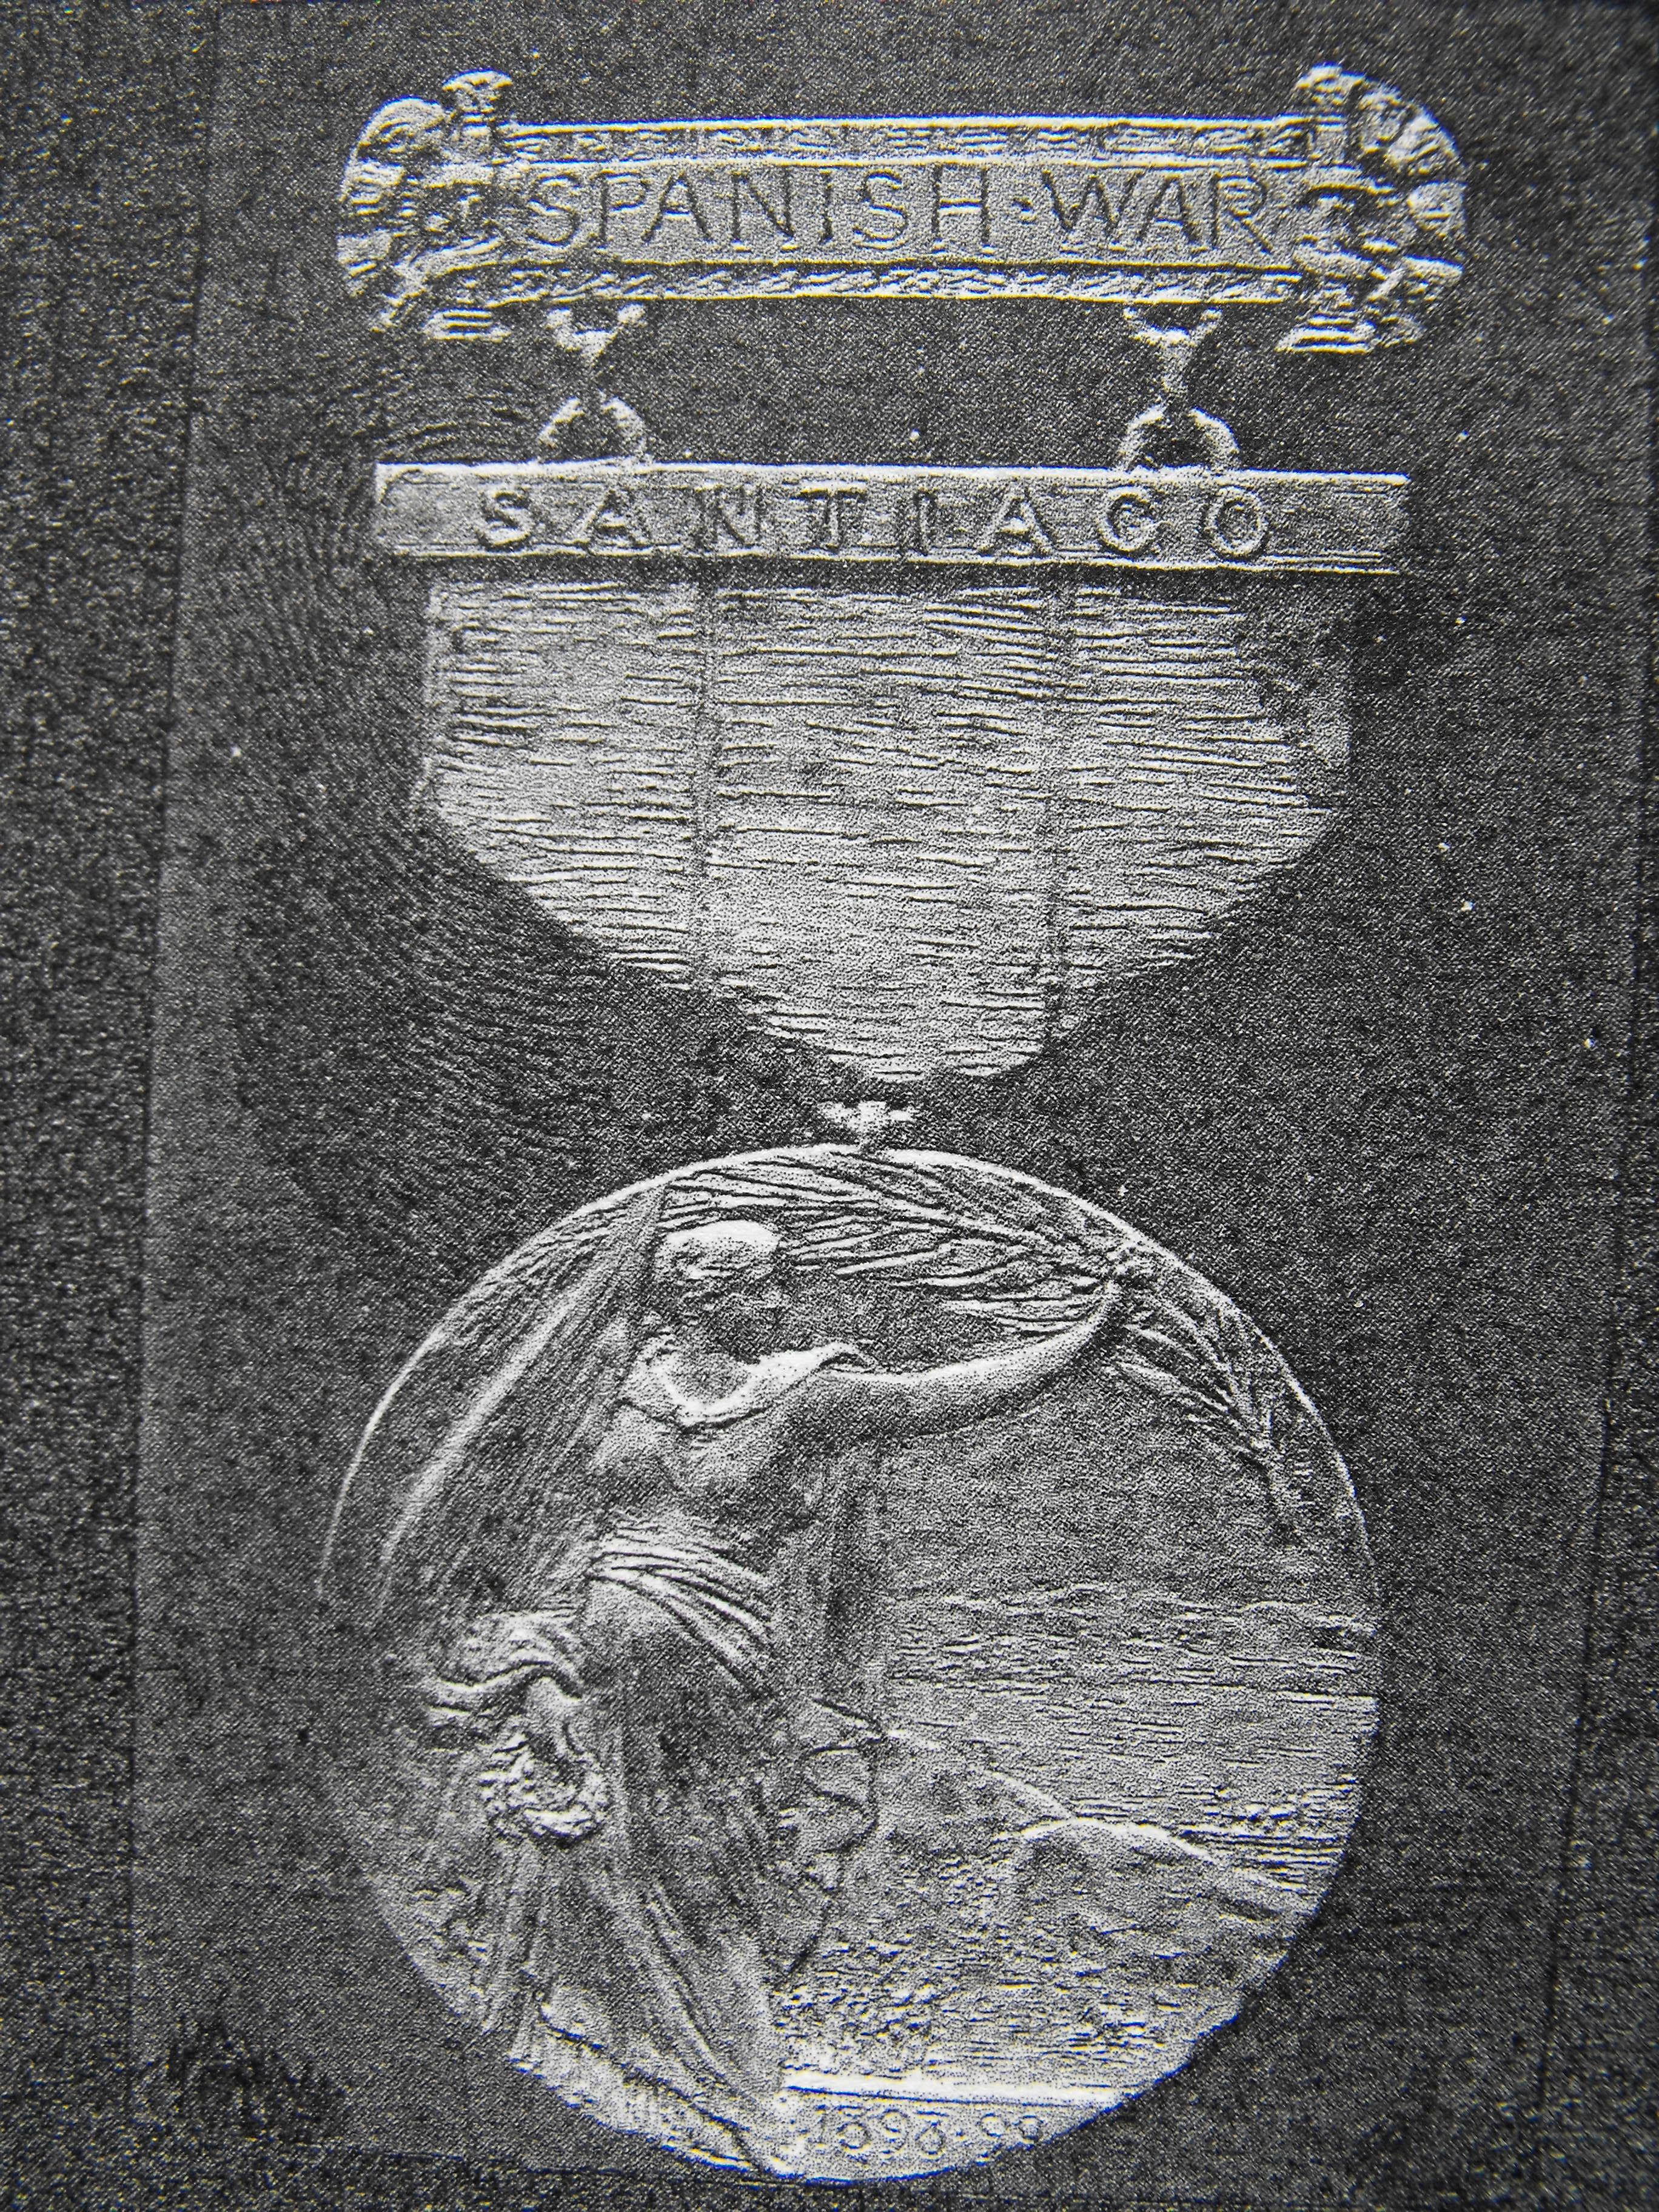 US Mint Proposed Medal for Span-Am War with Campaign Bar